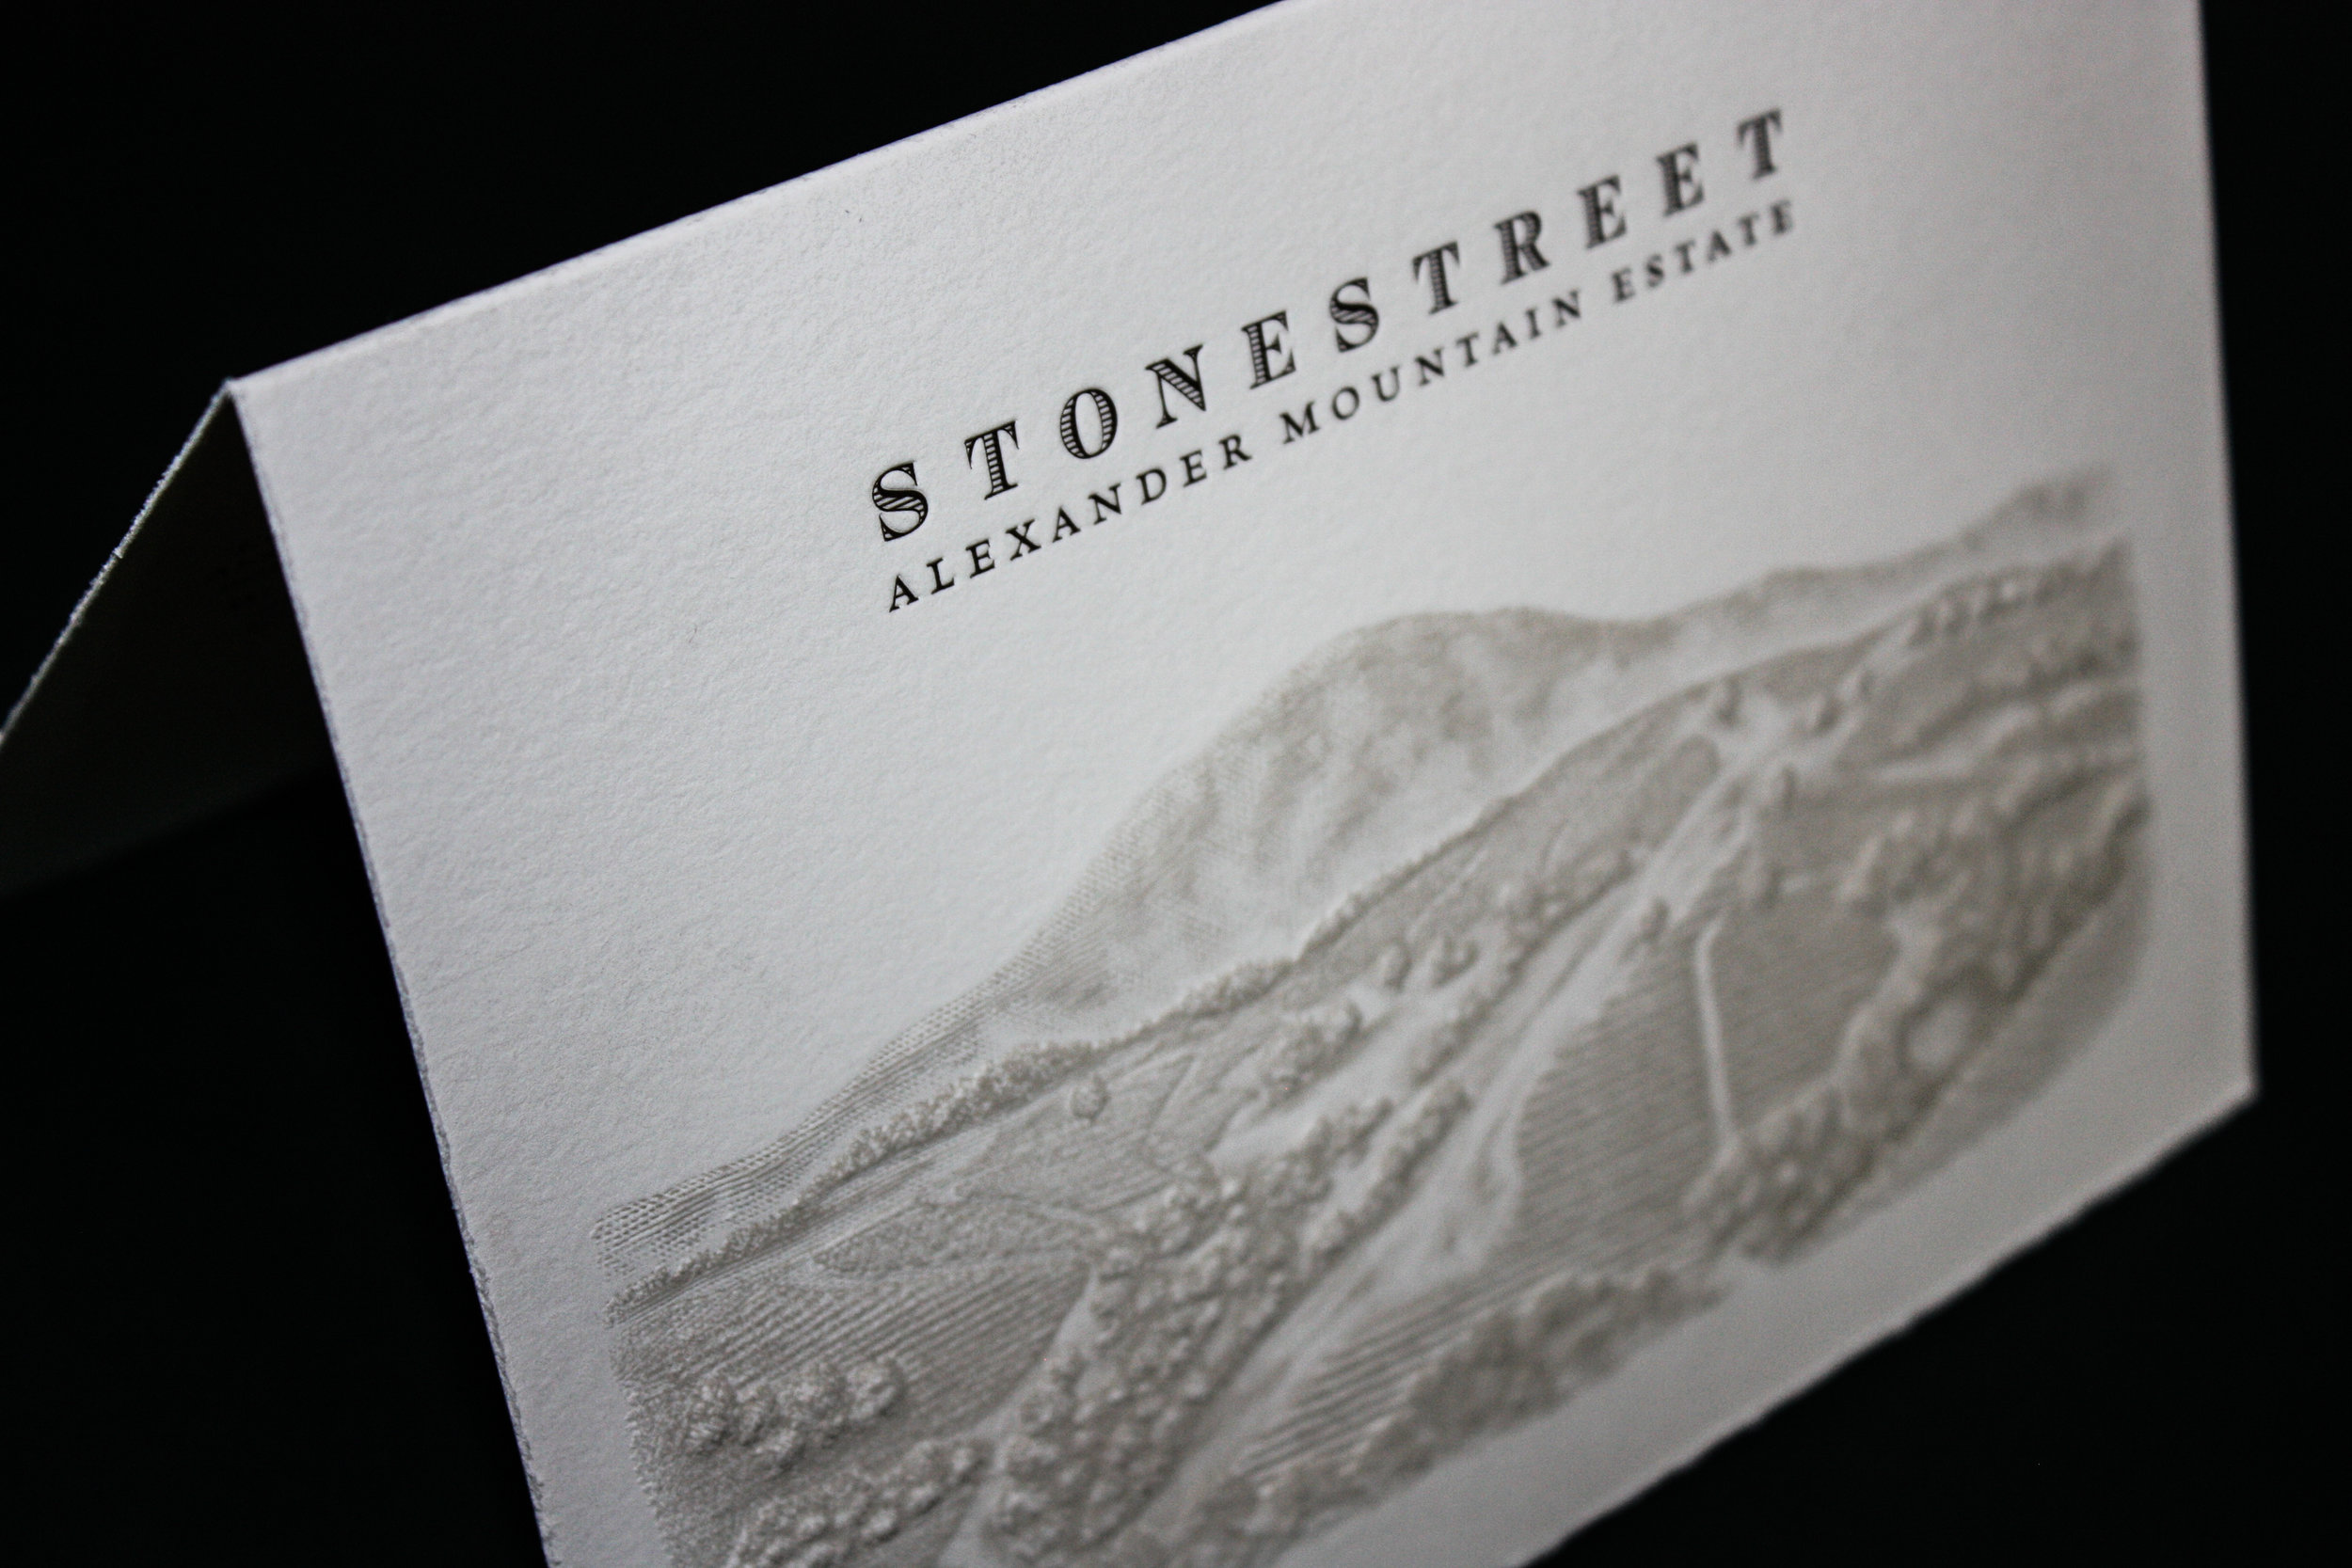 Stonestreet Client:  Odell Printing  Letterpress printed front cover. Sculpture embossed front image on folded notecards.